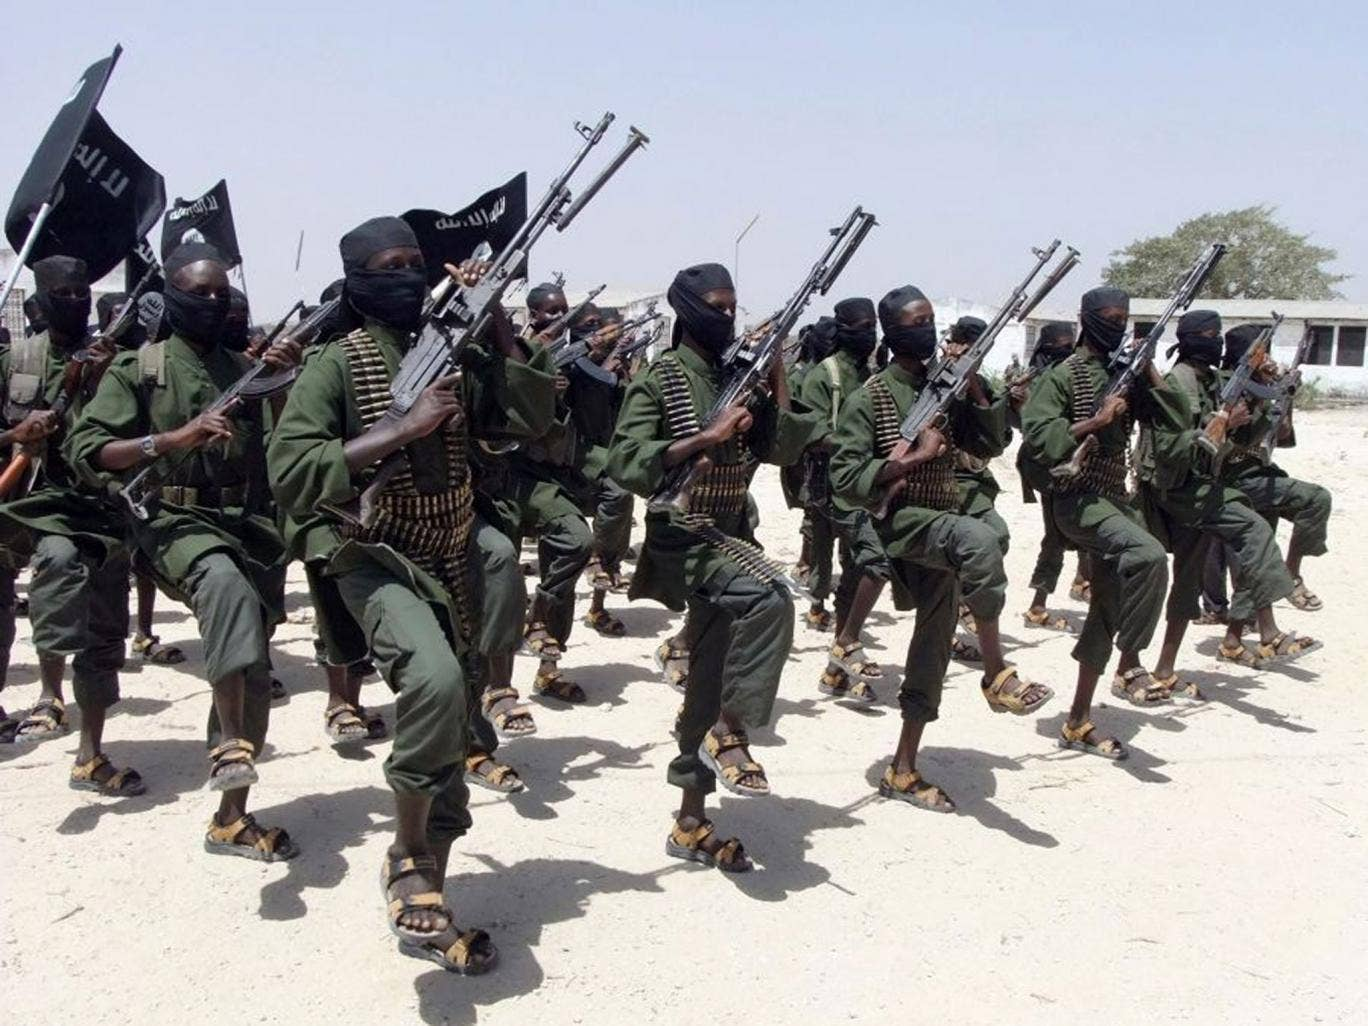 Pictured in 2011, hundreds of newly trained al-Shabab fighters perform military exercises in the Lafofe area some 18km south of Mogadishu, in Somalia